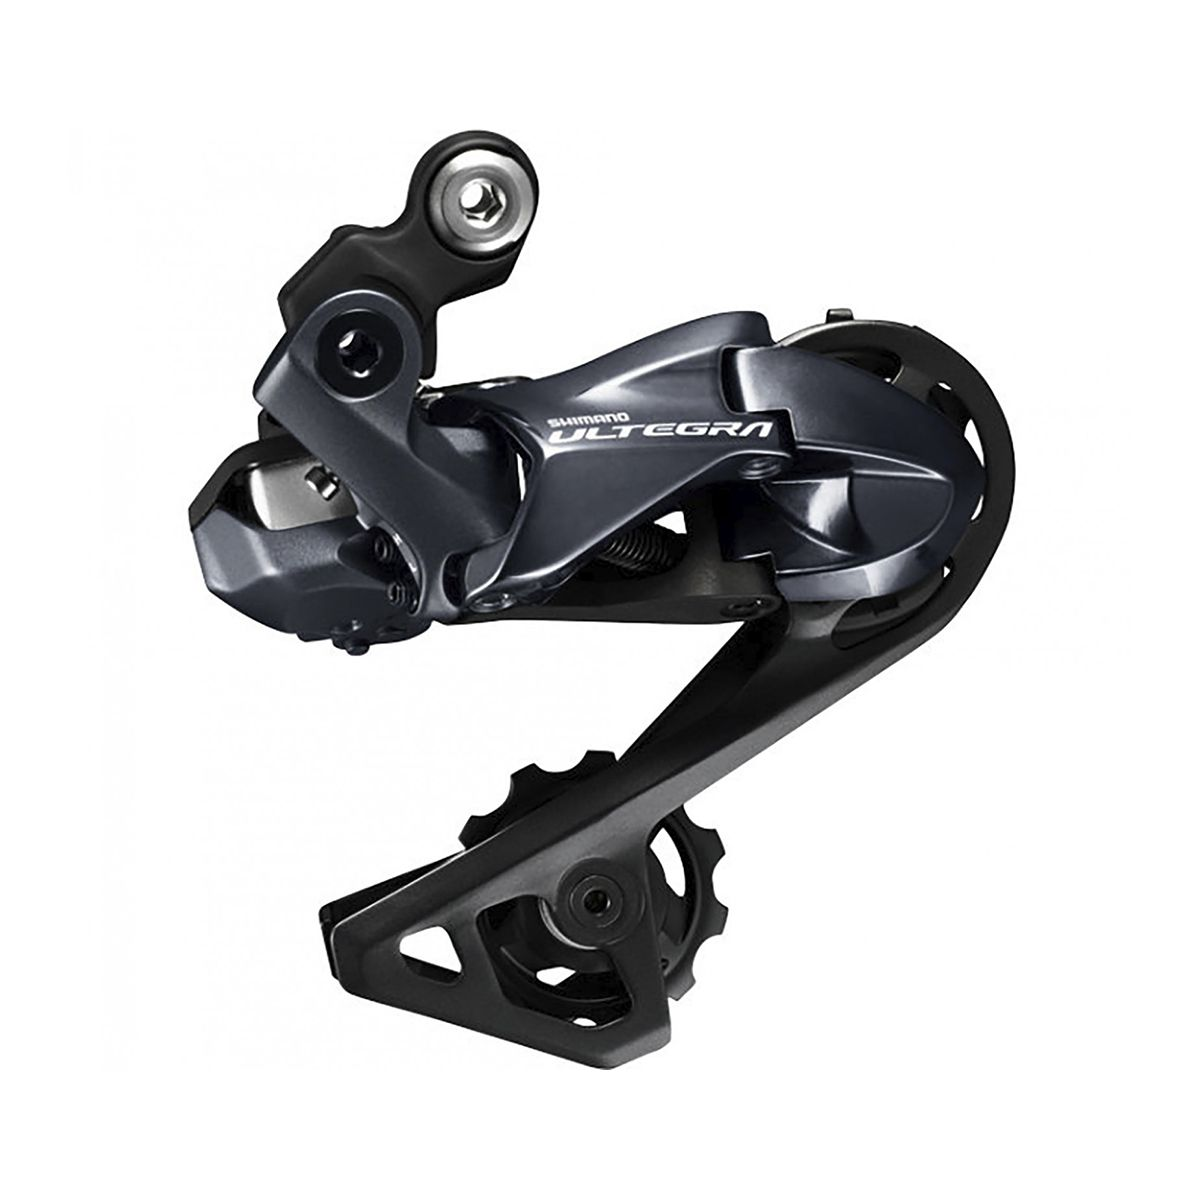 Ultegra Di2 RD-R8050 rear derailleur short/medium cage